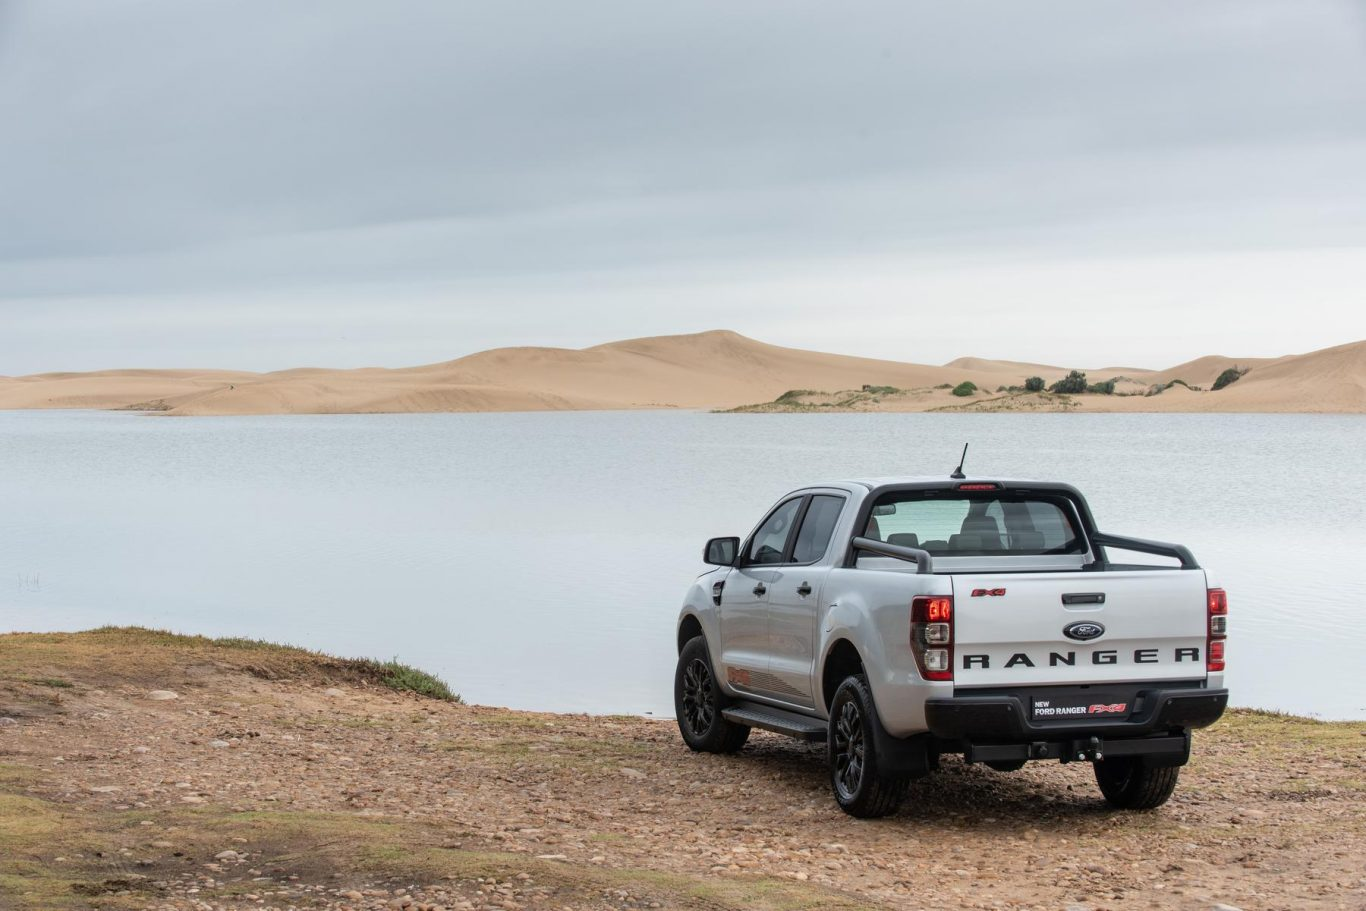 Ranger FX4 adding style, FordPass and connectivity to a pickup